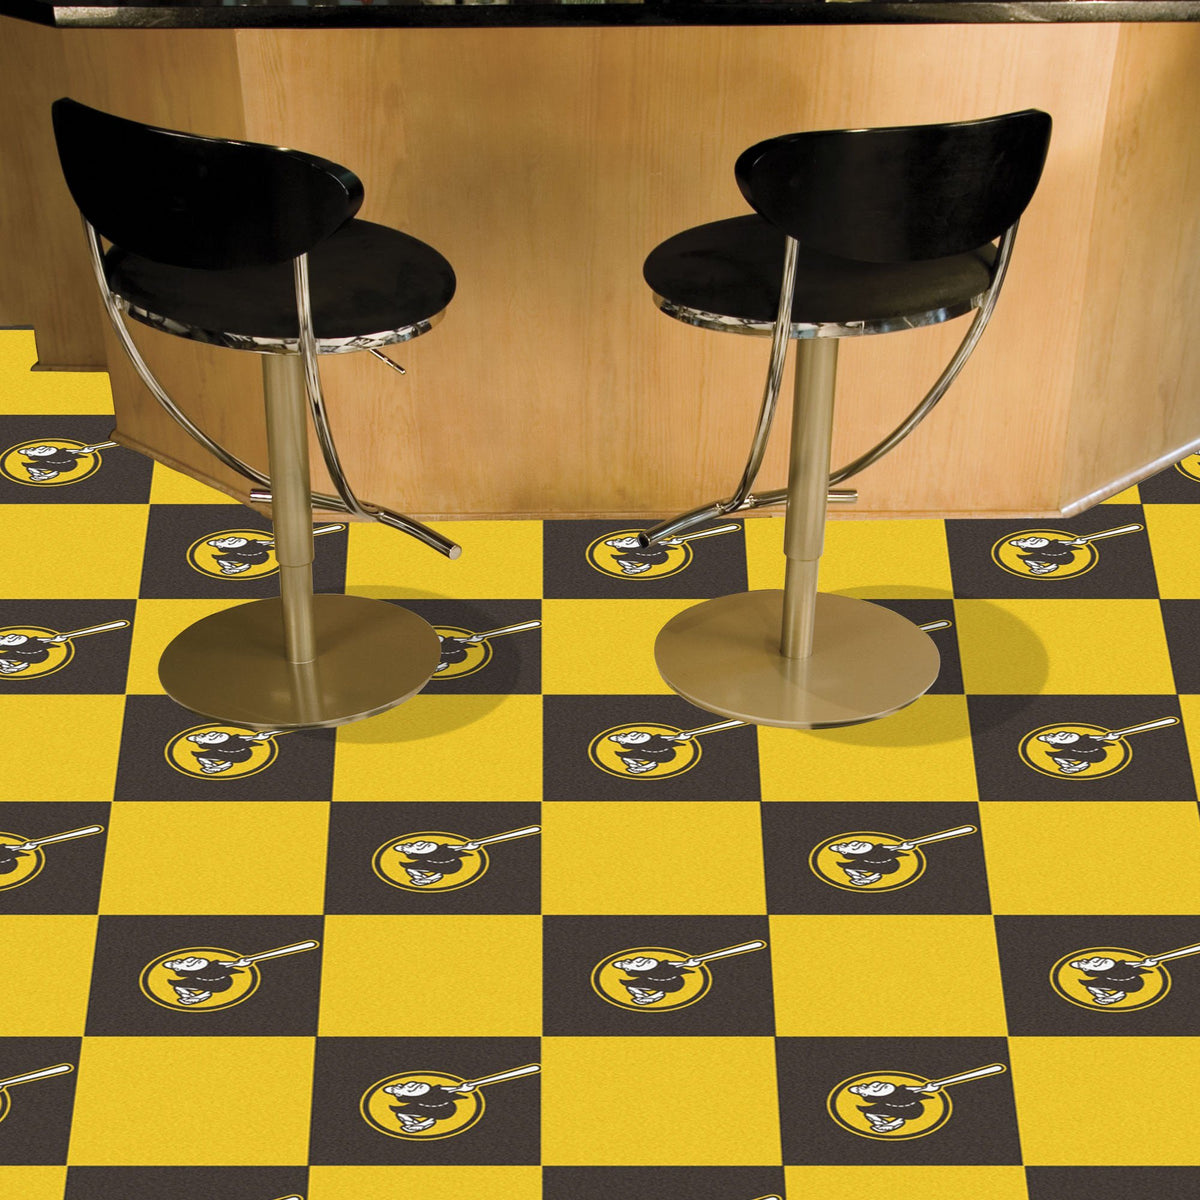 MLB - Team Carpet Tiles MLB Mats, Carpet Tile Flooring, Team Carpet Tiles, MLB, Home Fan Mats San Diego Padres 2